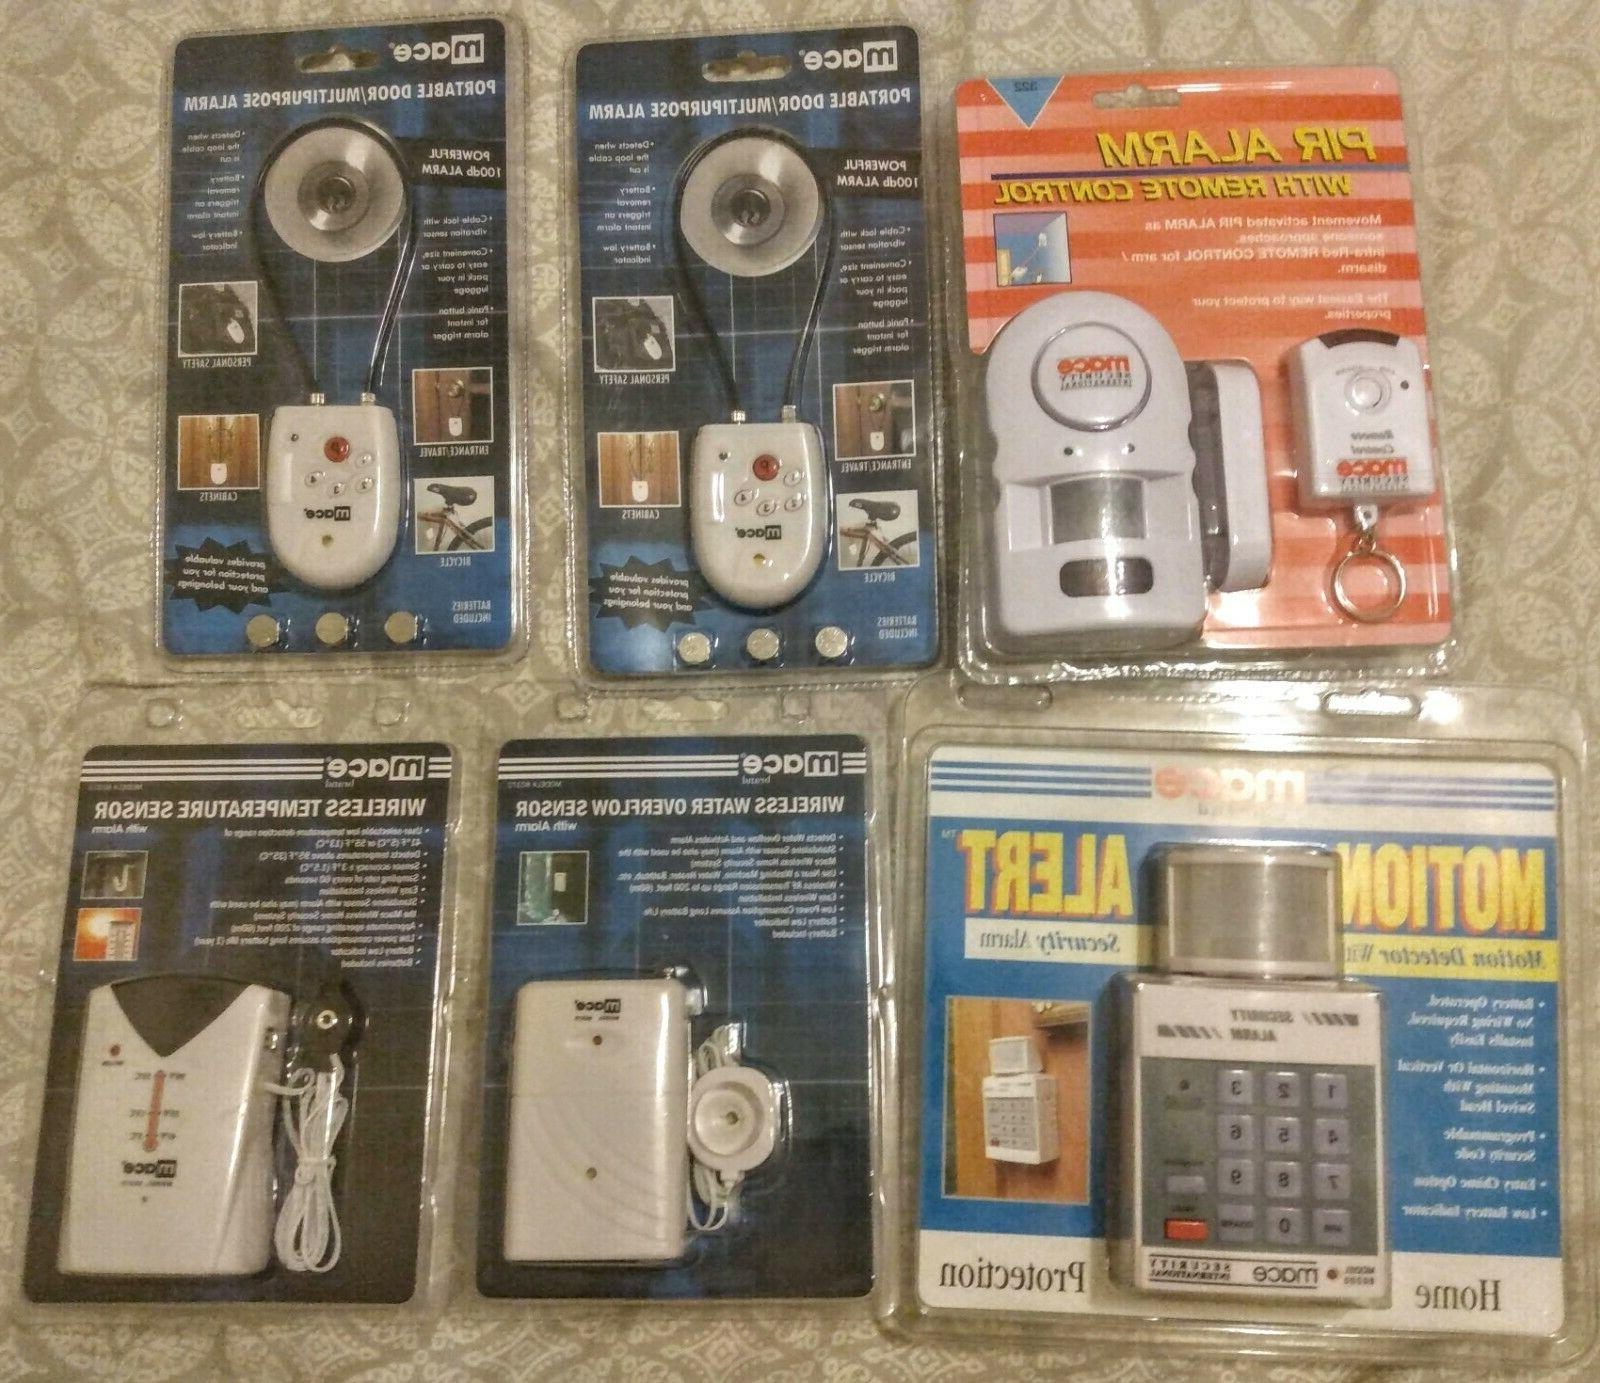 5 electronic devices sensors alarms